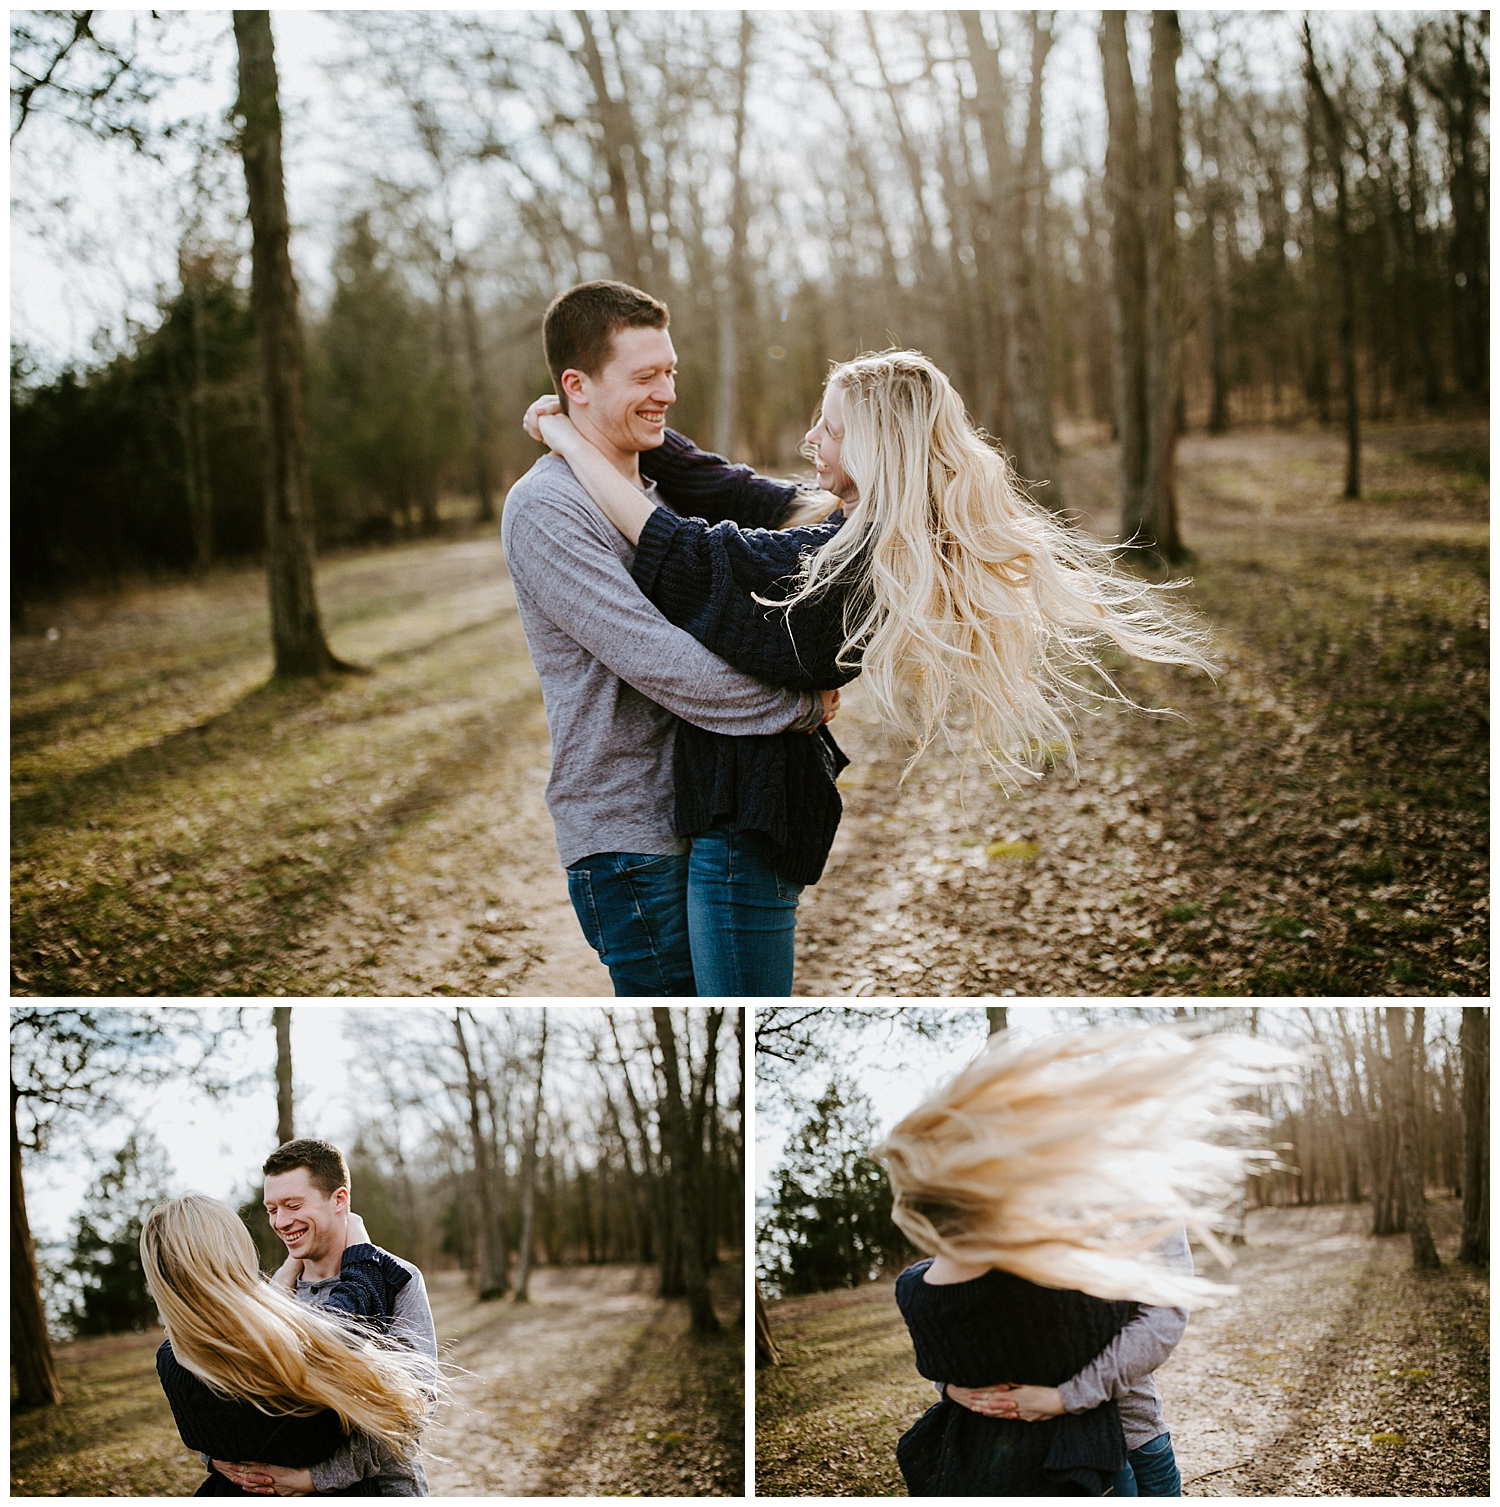 nashville-engagement-session-28.jpg